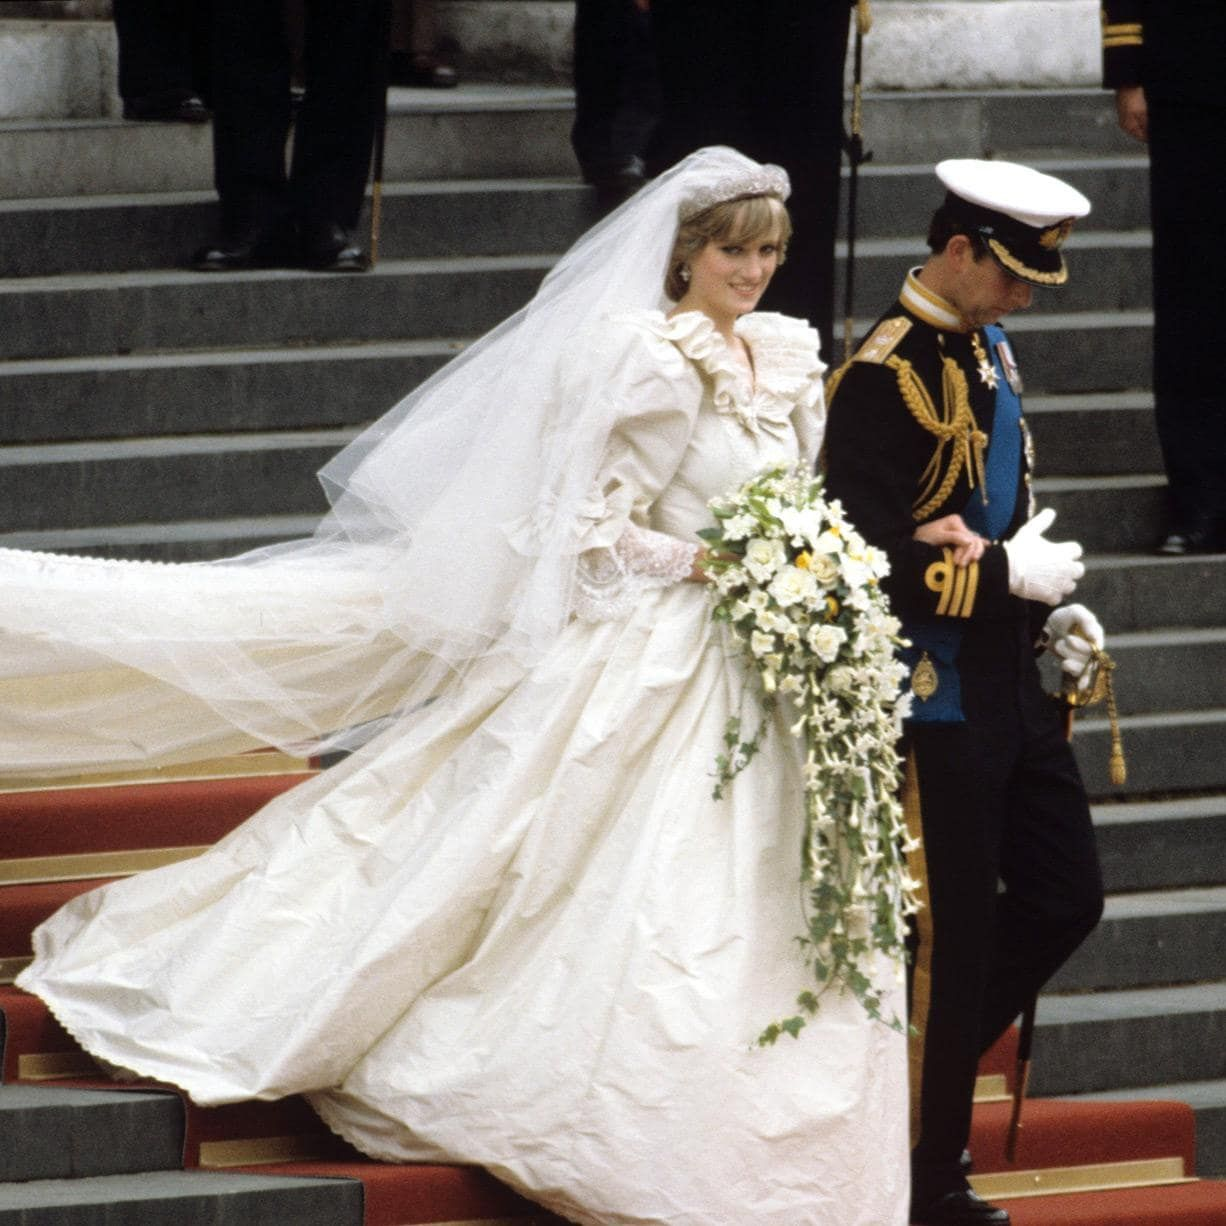 Royal wedding dresses through the years Princess diana